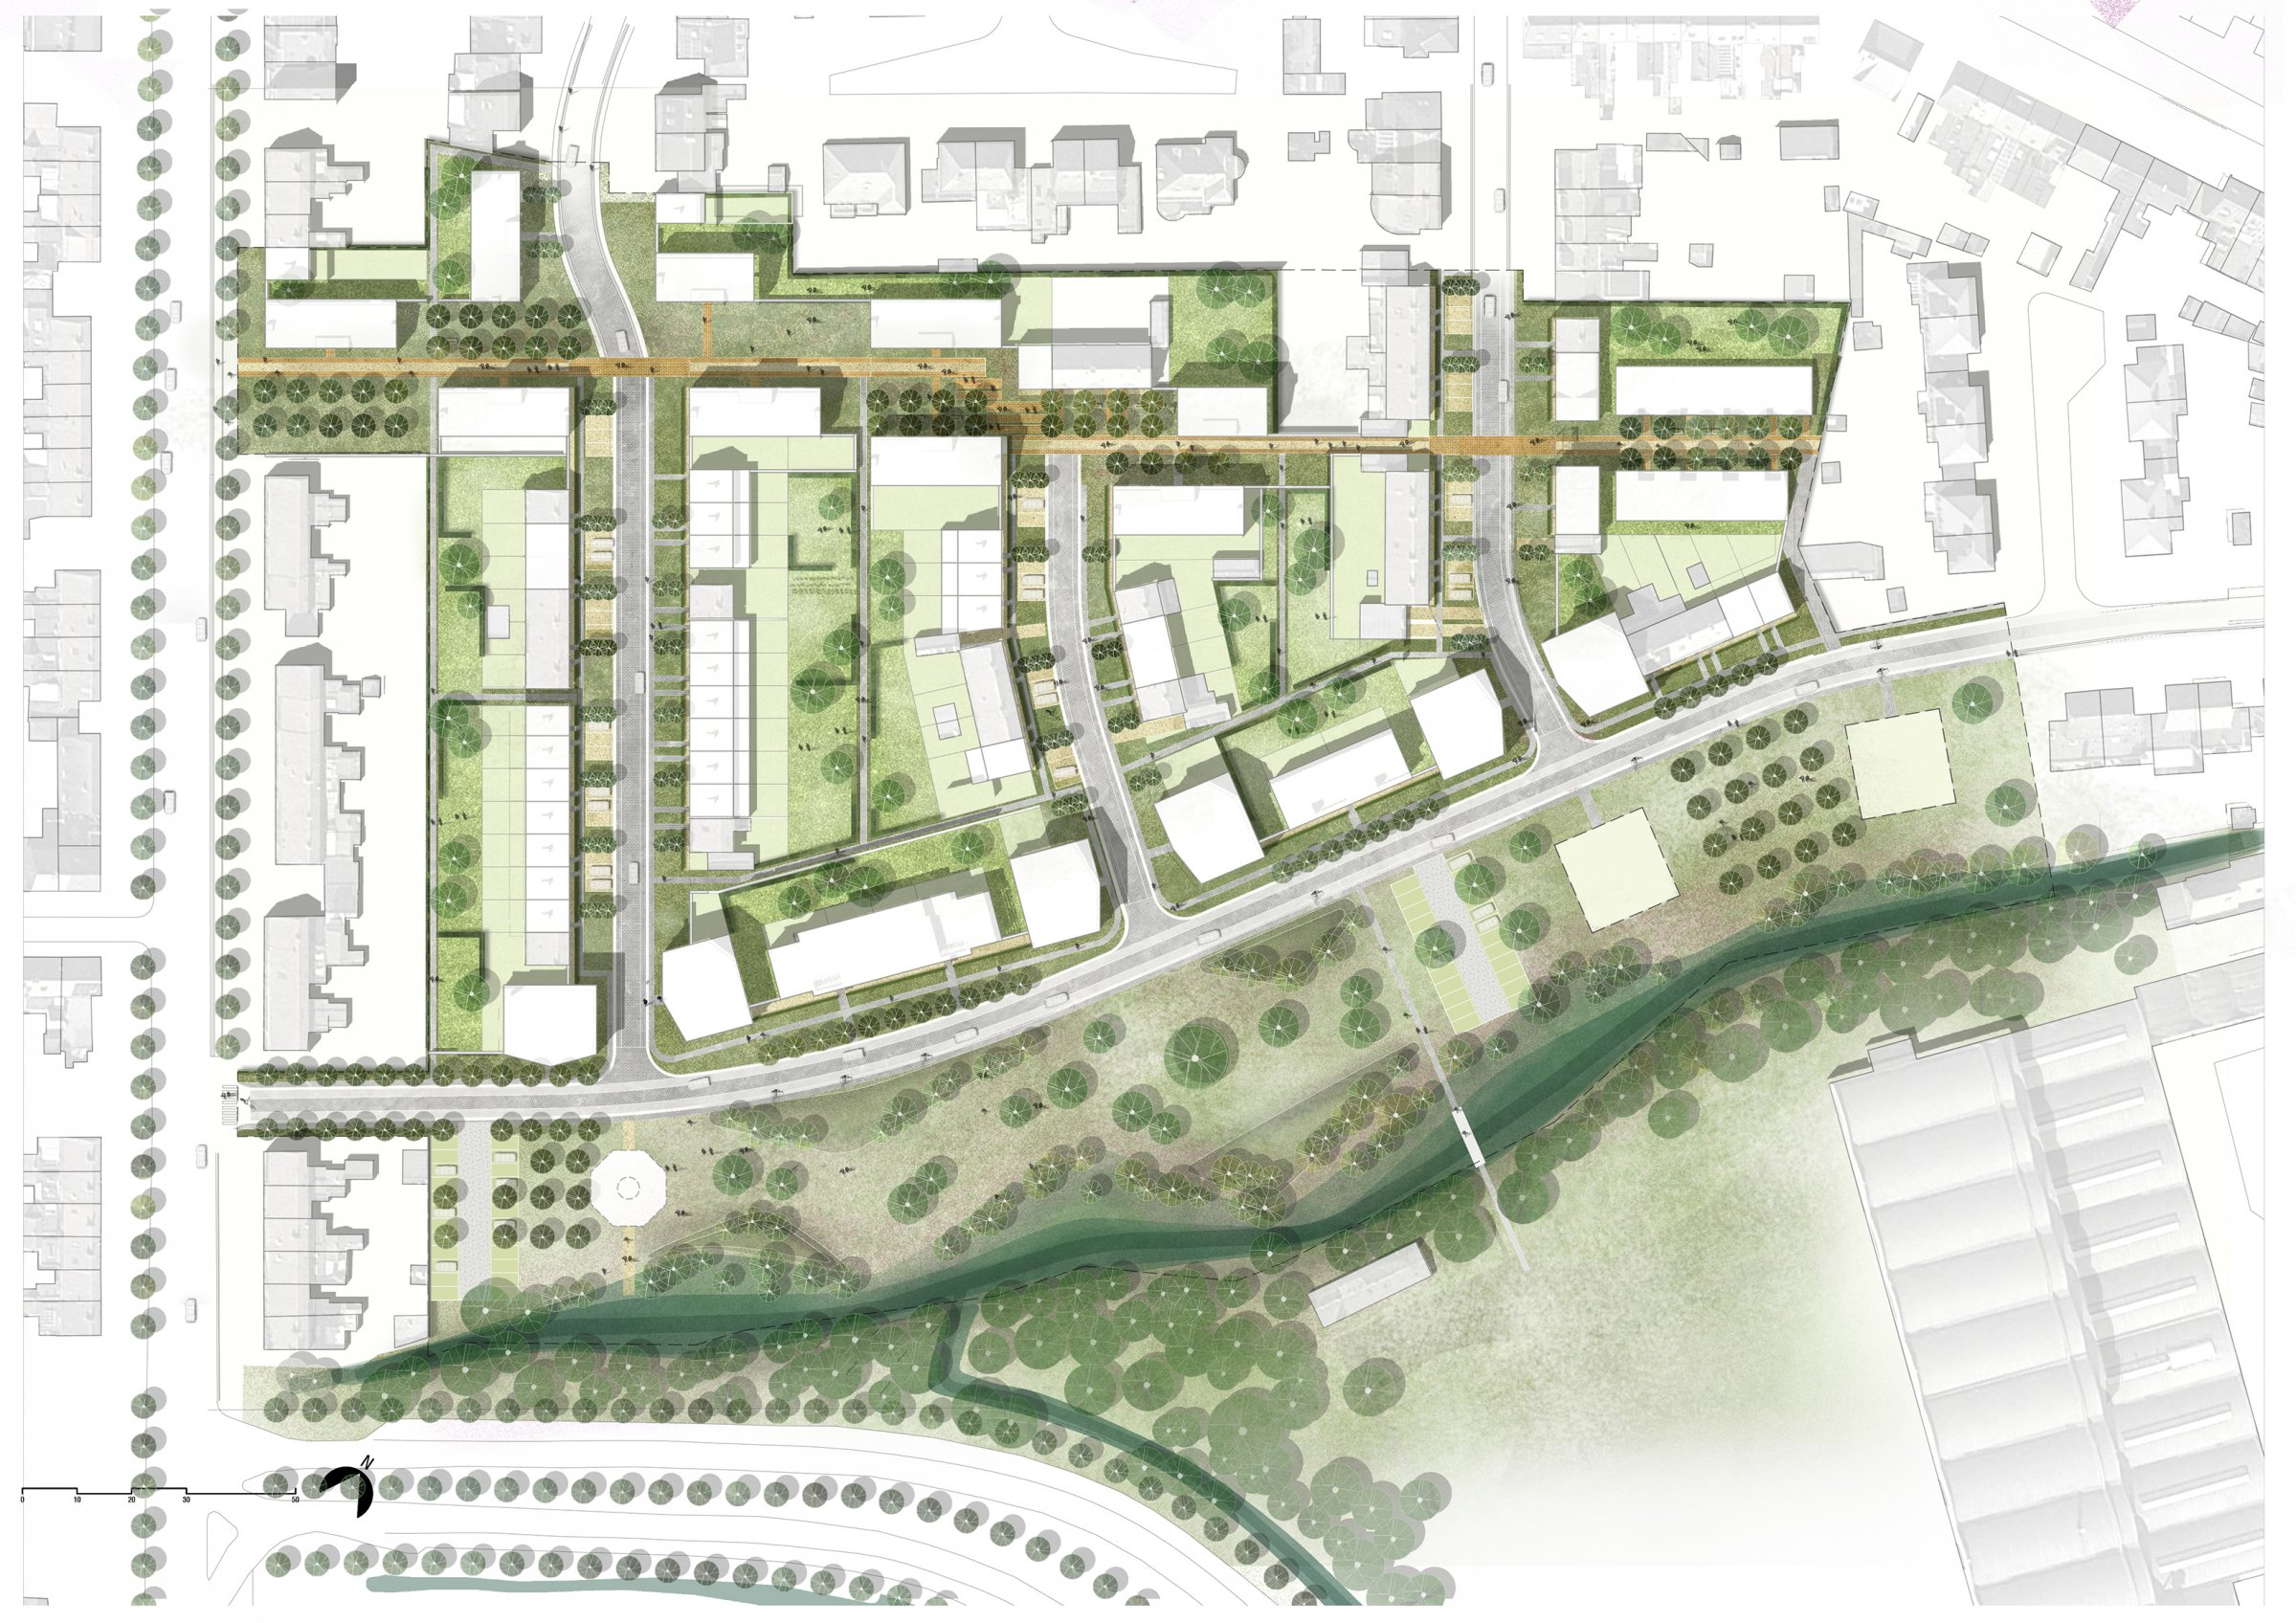 29042019 Zwijndrecht_ masterplan(KD)-1-1000 (A3) FINAL